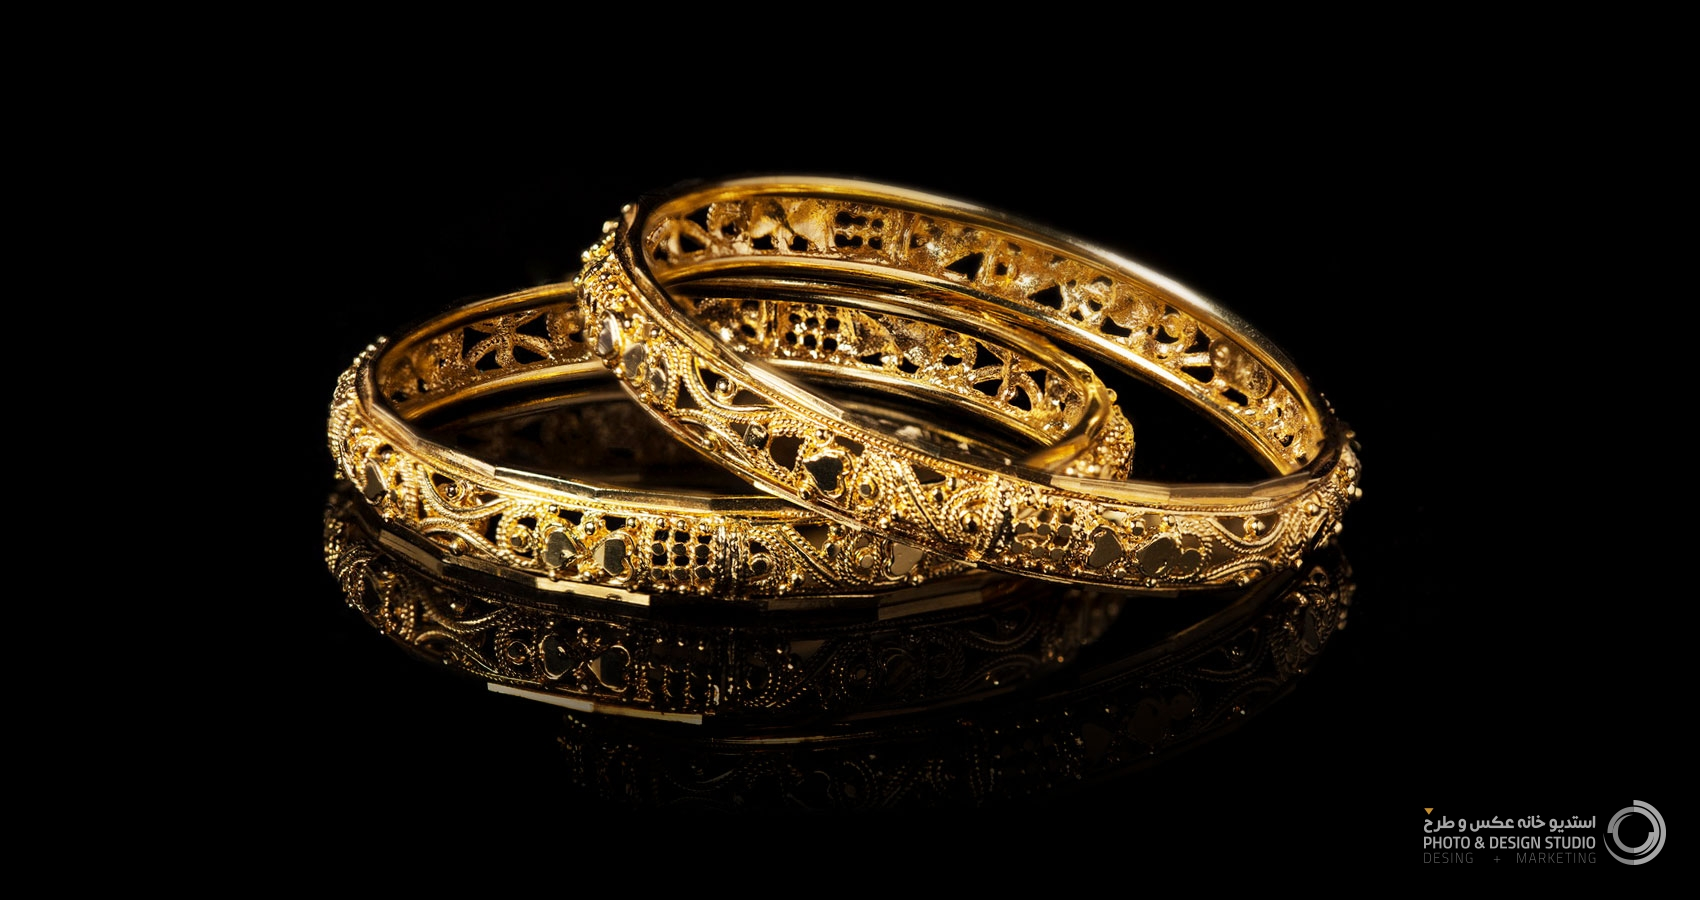 GOLD PHOTOGRAPHY